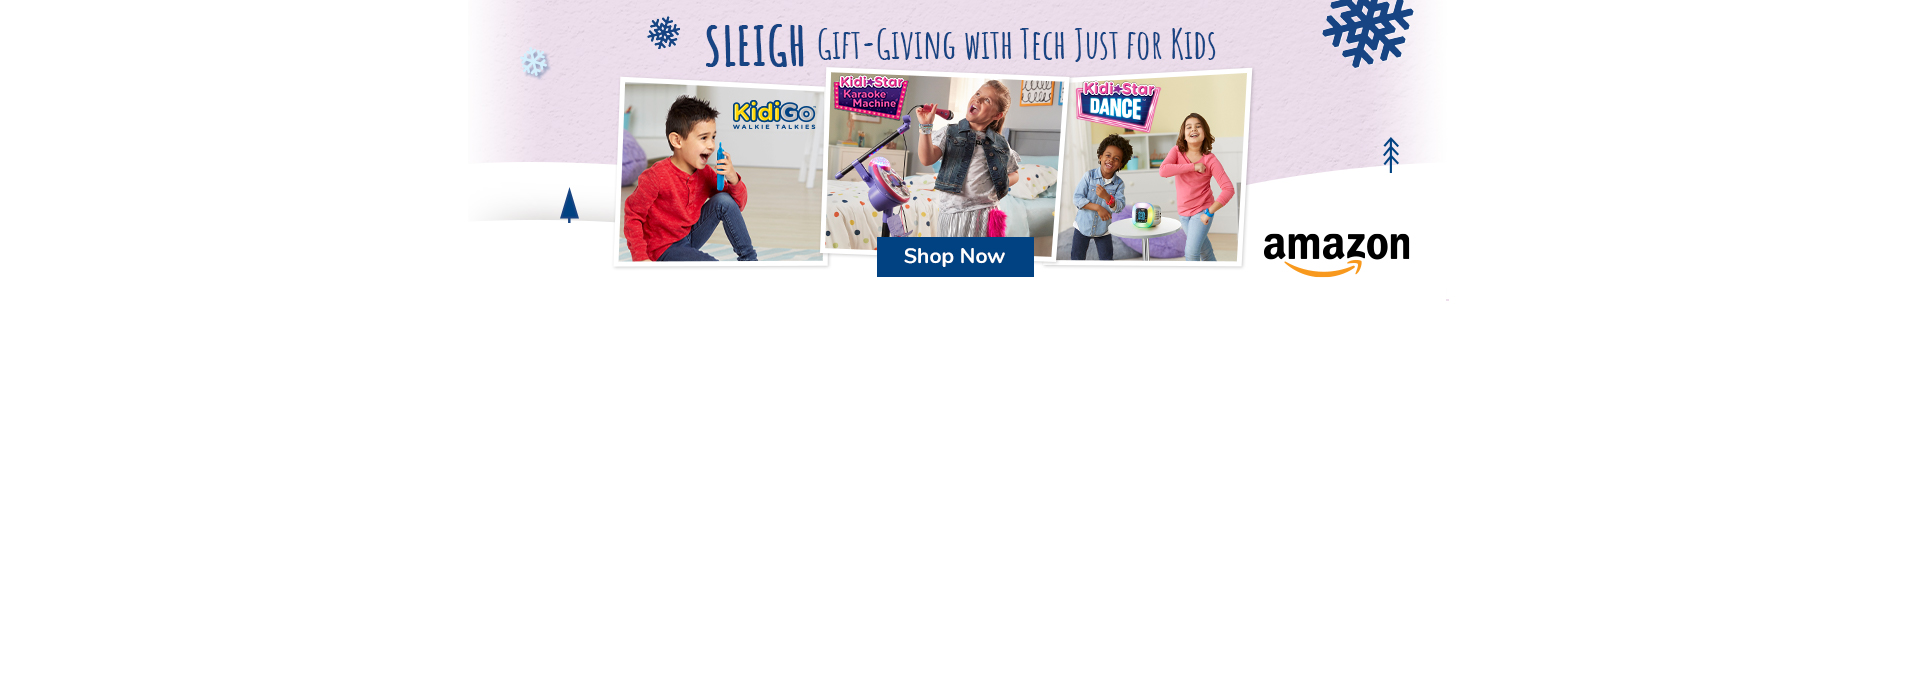 Amazon SLEIGH Gift-Giving with tech just for kids